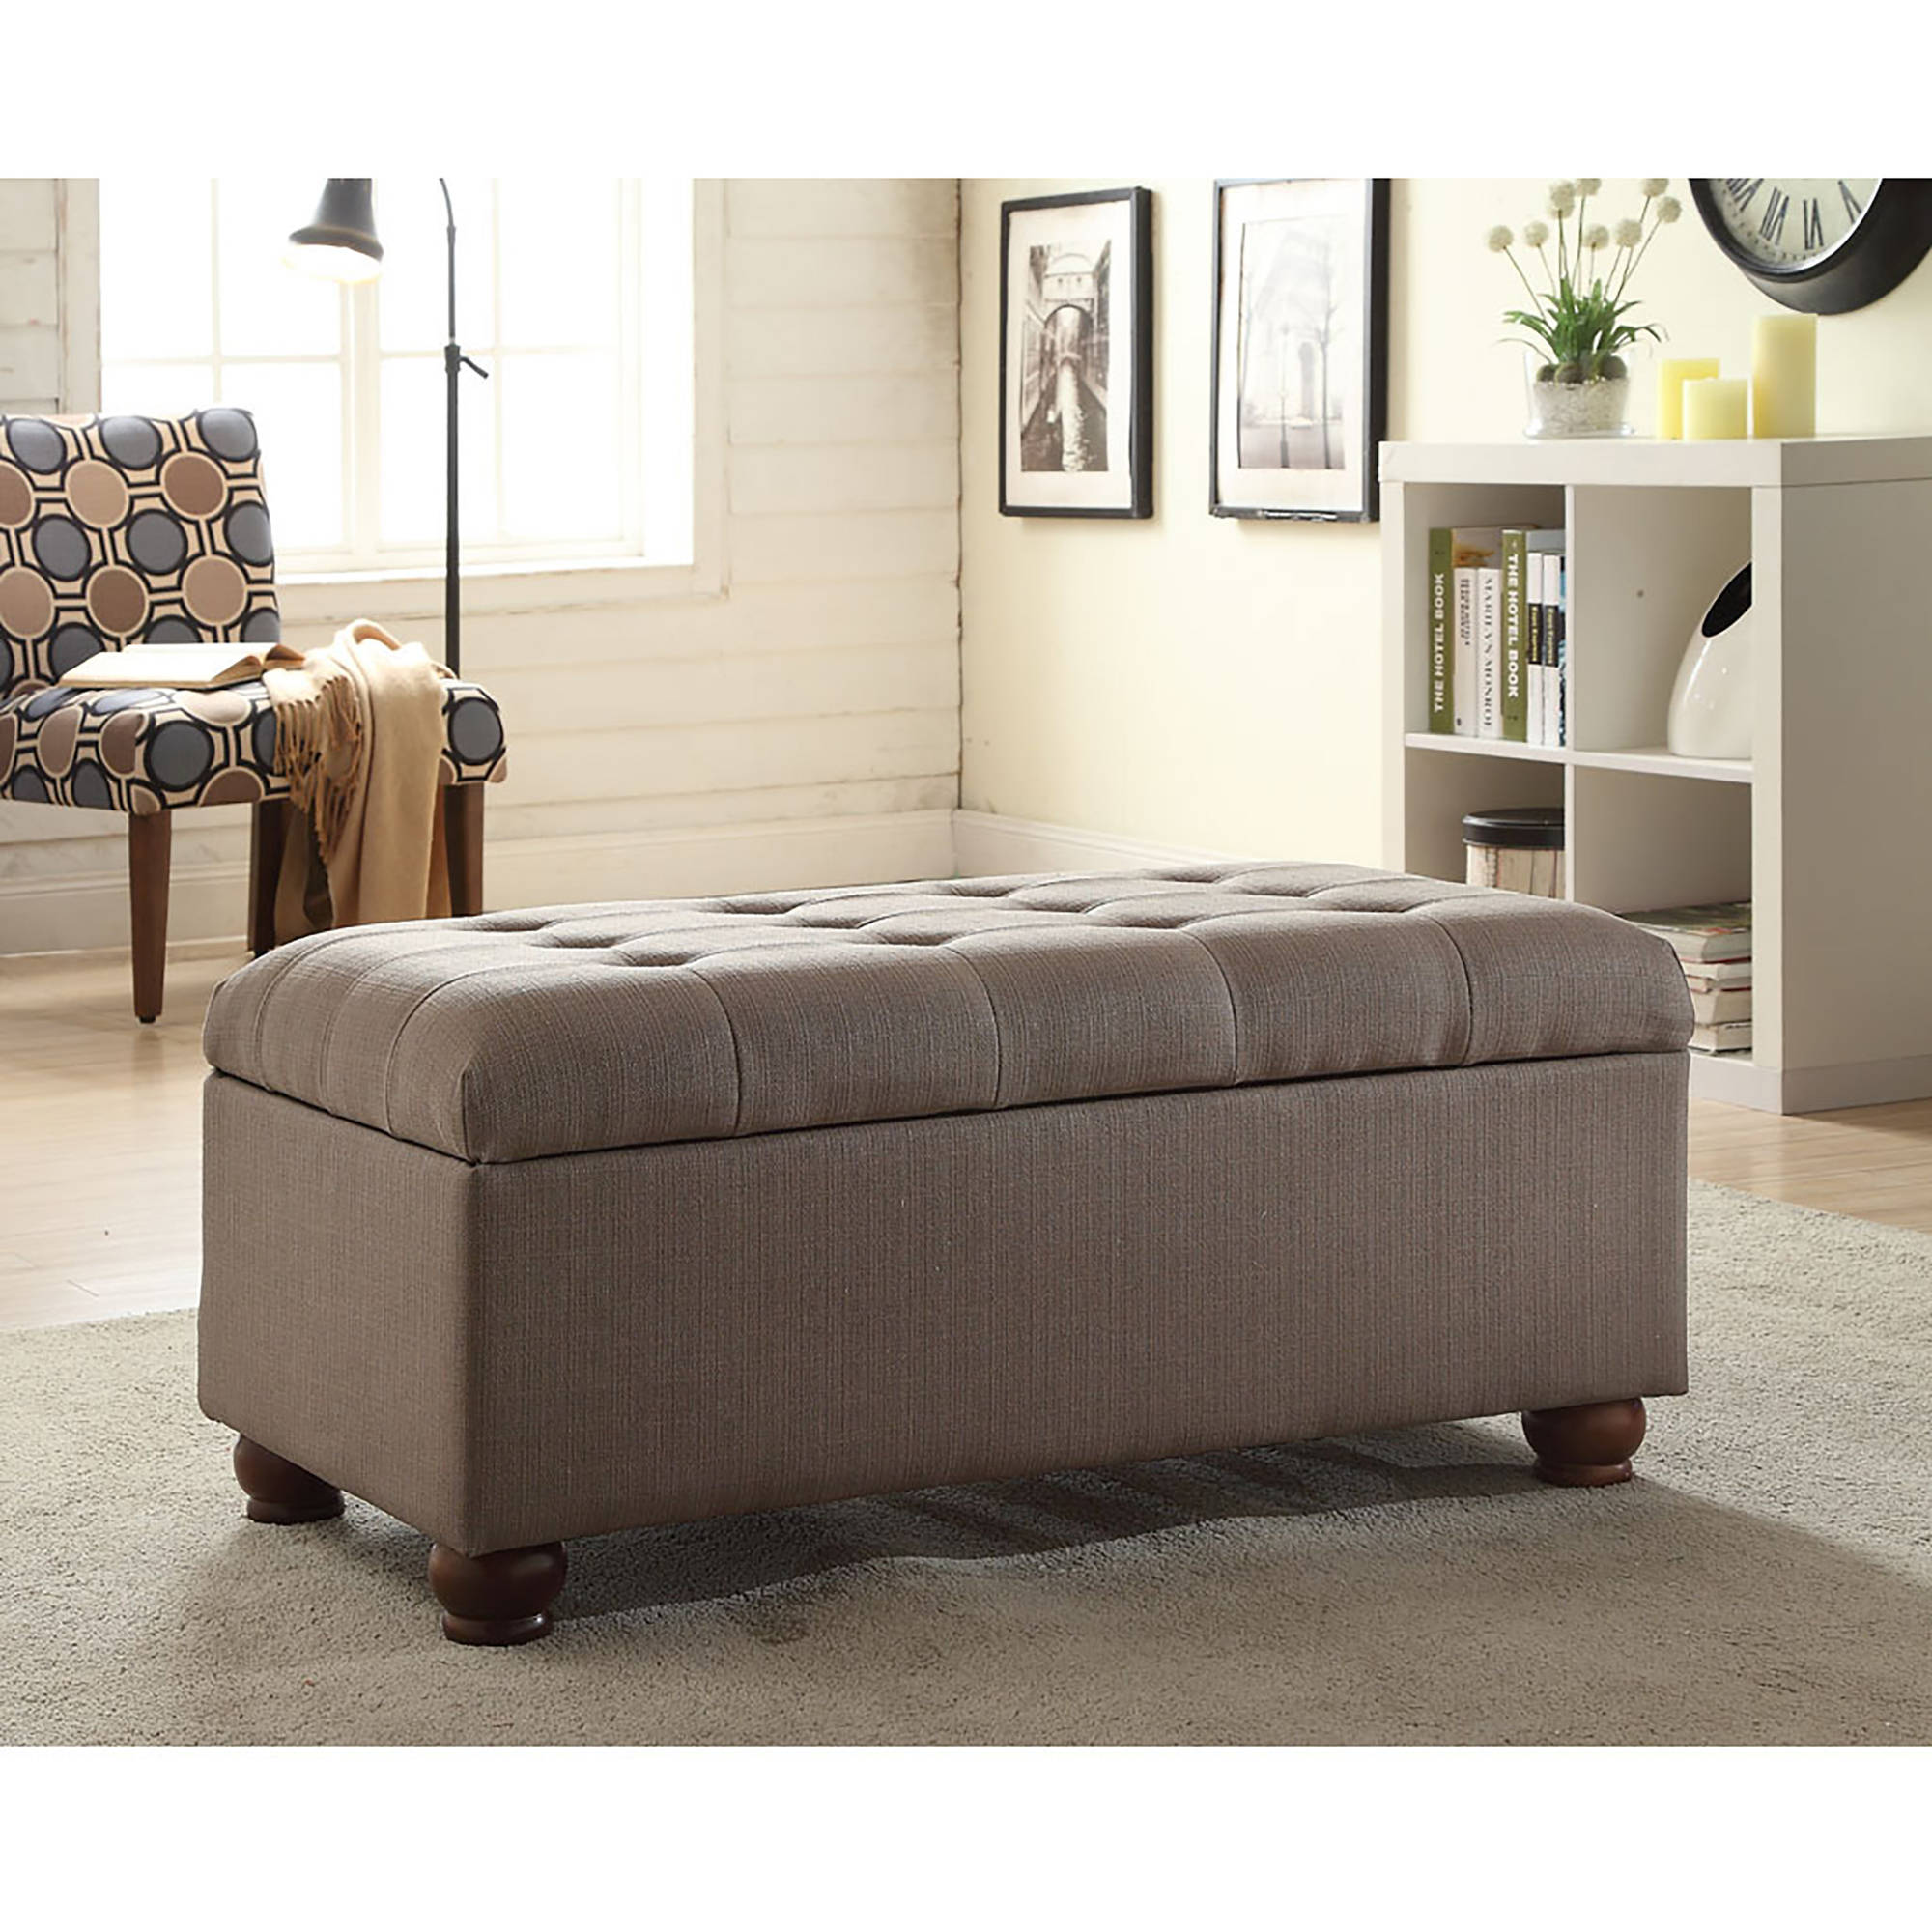 tufted  storage bench with turned legs dolphin gray  walmartcom -